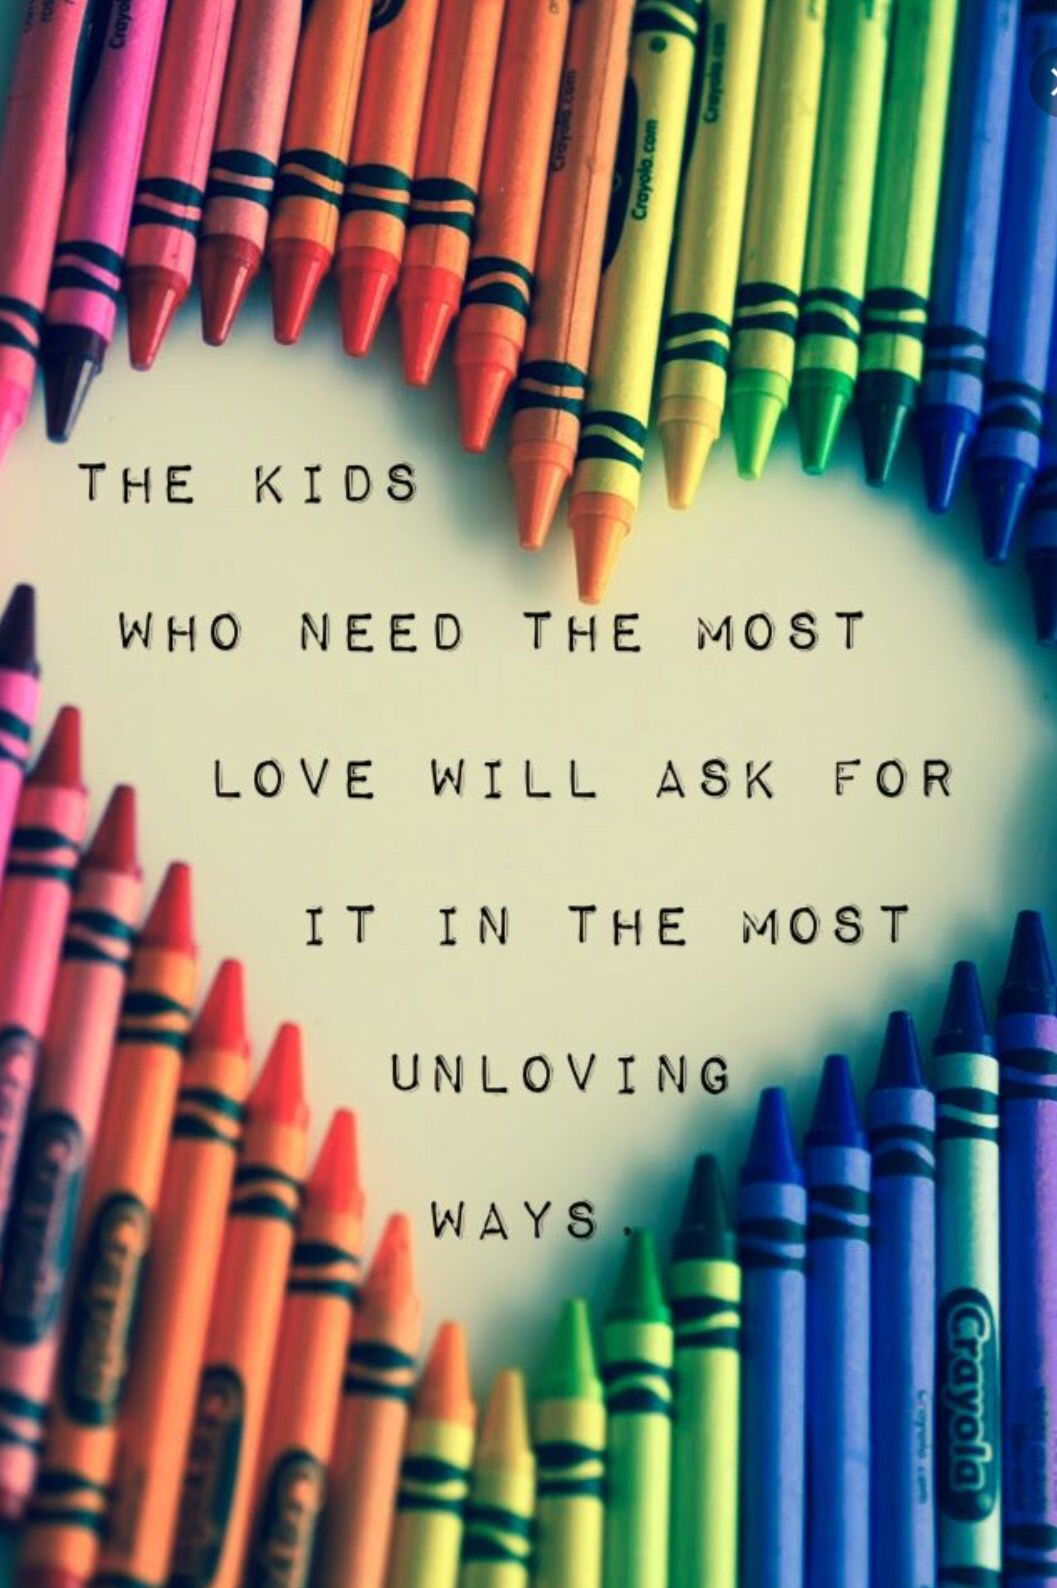 True. Kids Love In